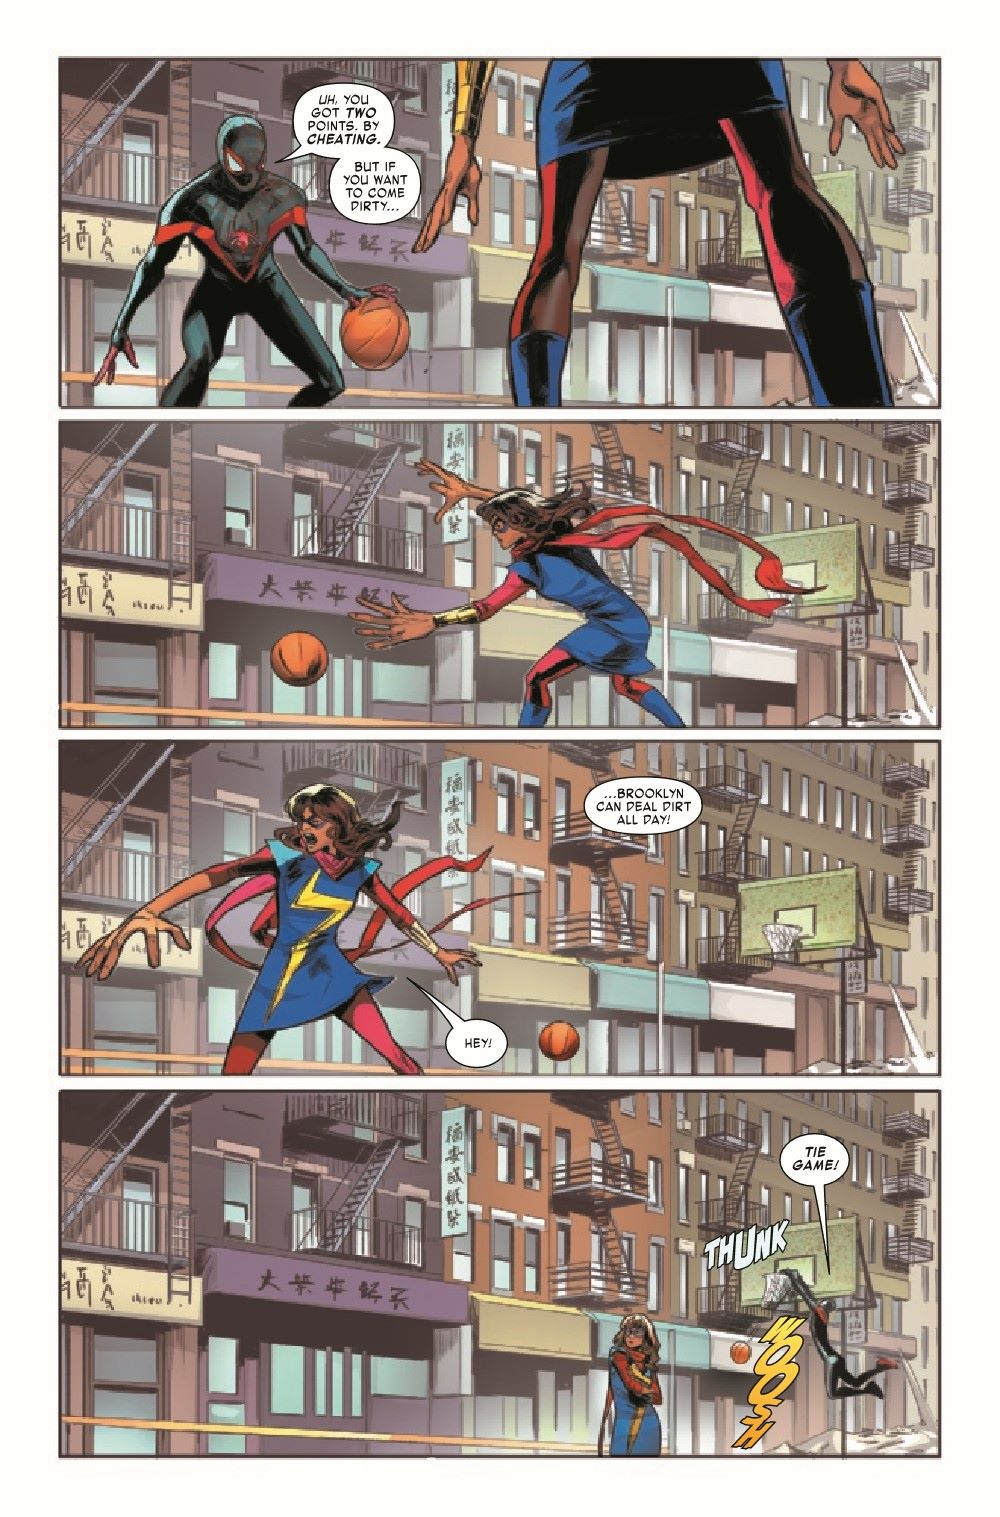 MMSM2018024_Preview-4 ComicList Previews: MILES MORALES SPIDER-MAN #24